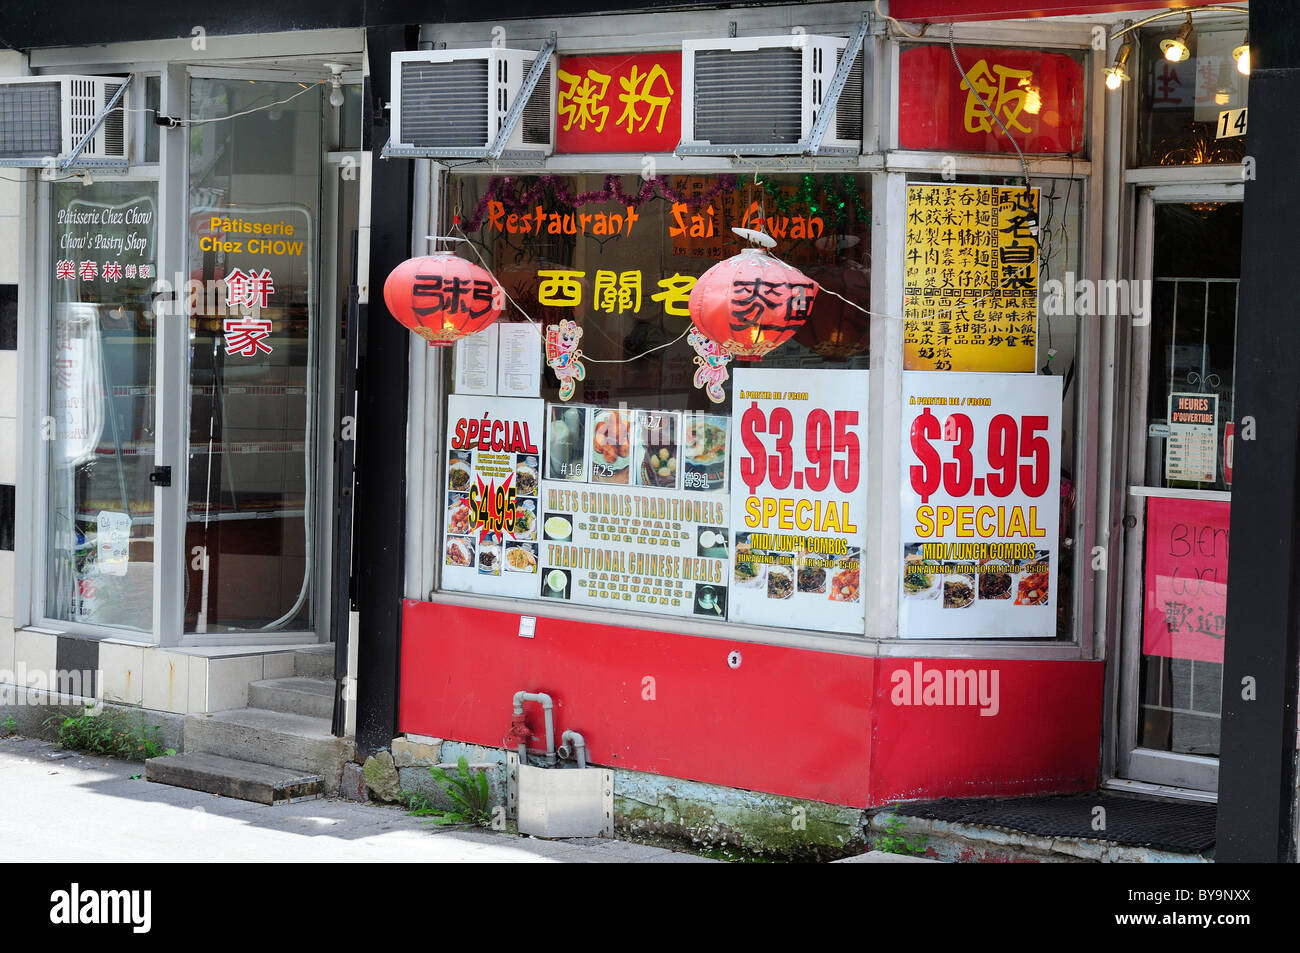 a chinese restaurant in china town montreal canada stock. Black Bedroom Furniture Sets. Home Design Ideas